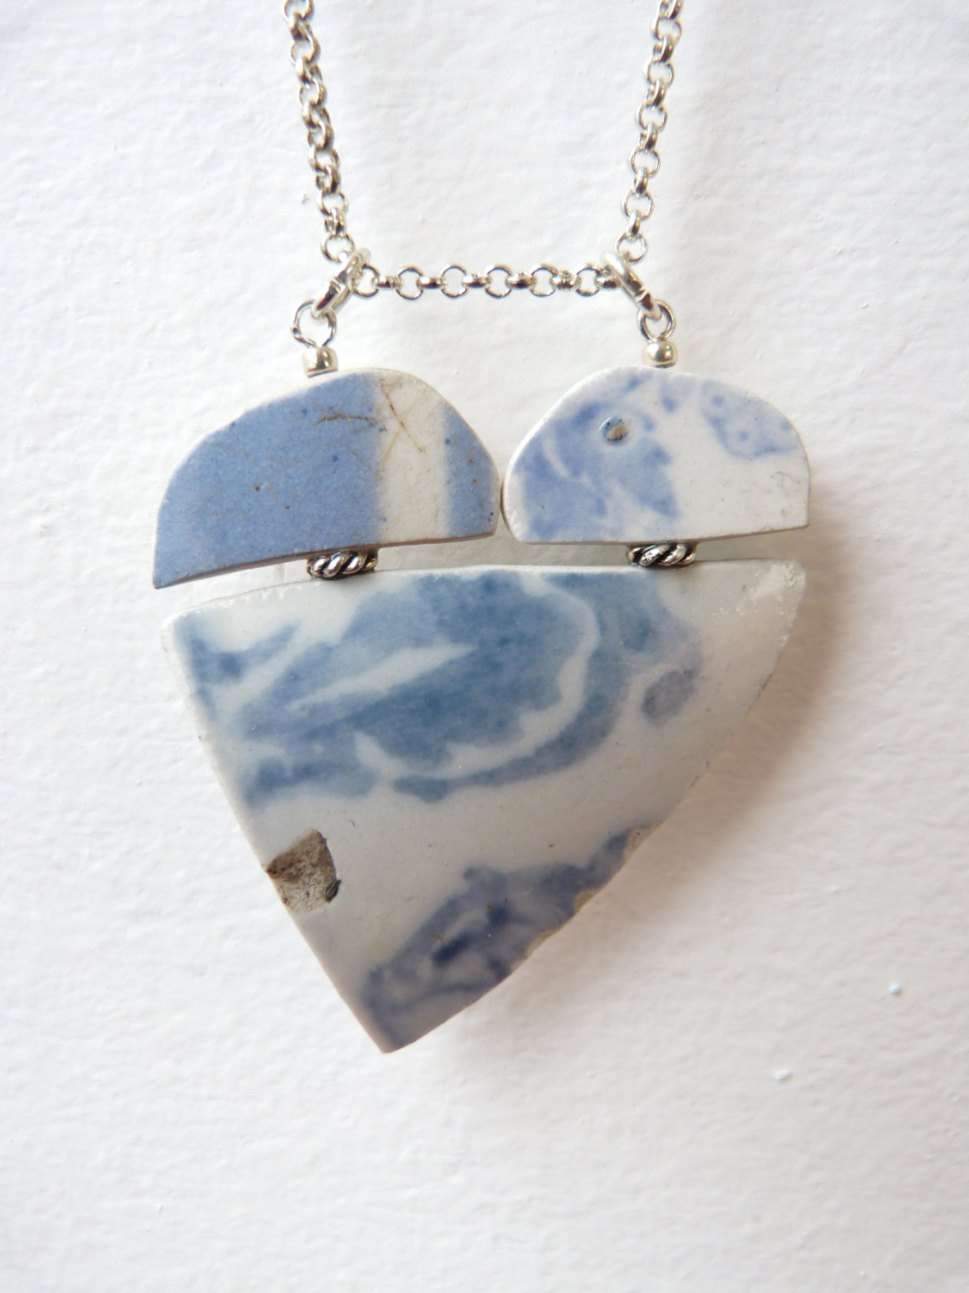 jewelry made from fragments of broken vintage china